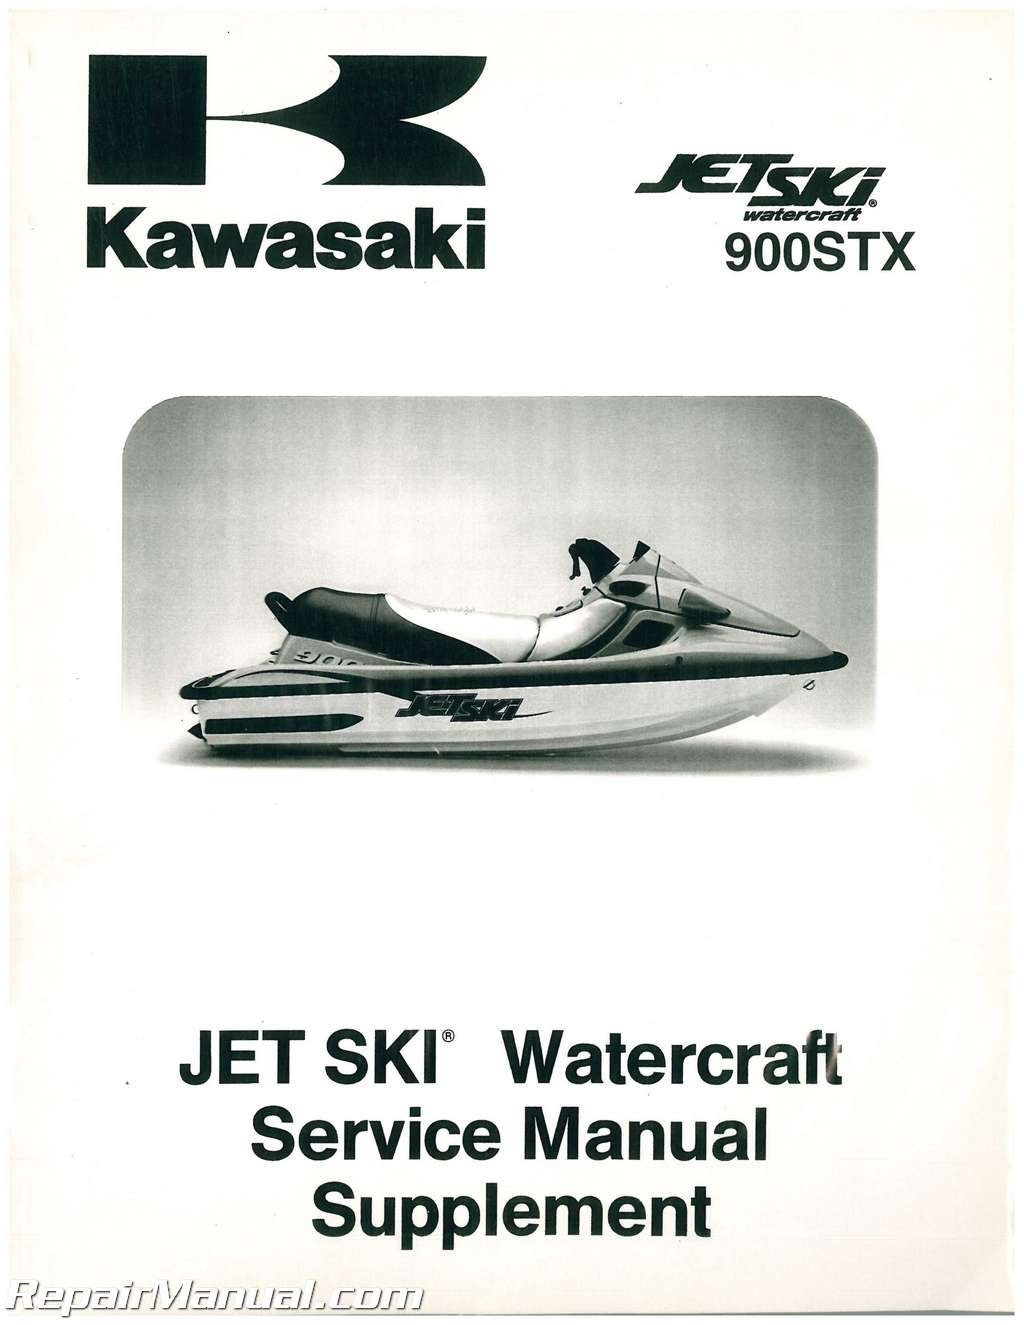 99924-1242-52 1999-2002 Kawasaki 900 STX Jet Ski Factory Service Manual  Supplement: Manufacturer: Amazon.com: Books